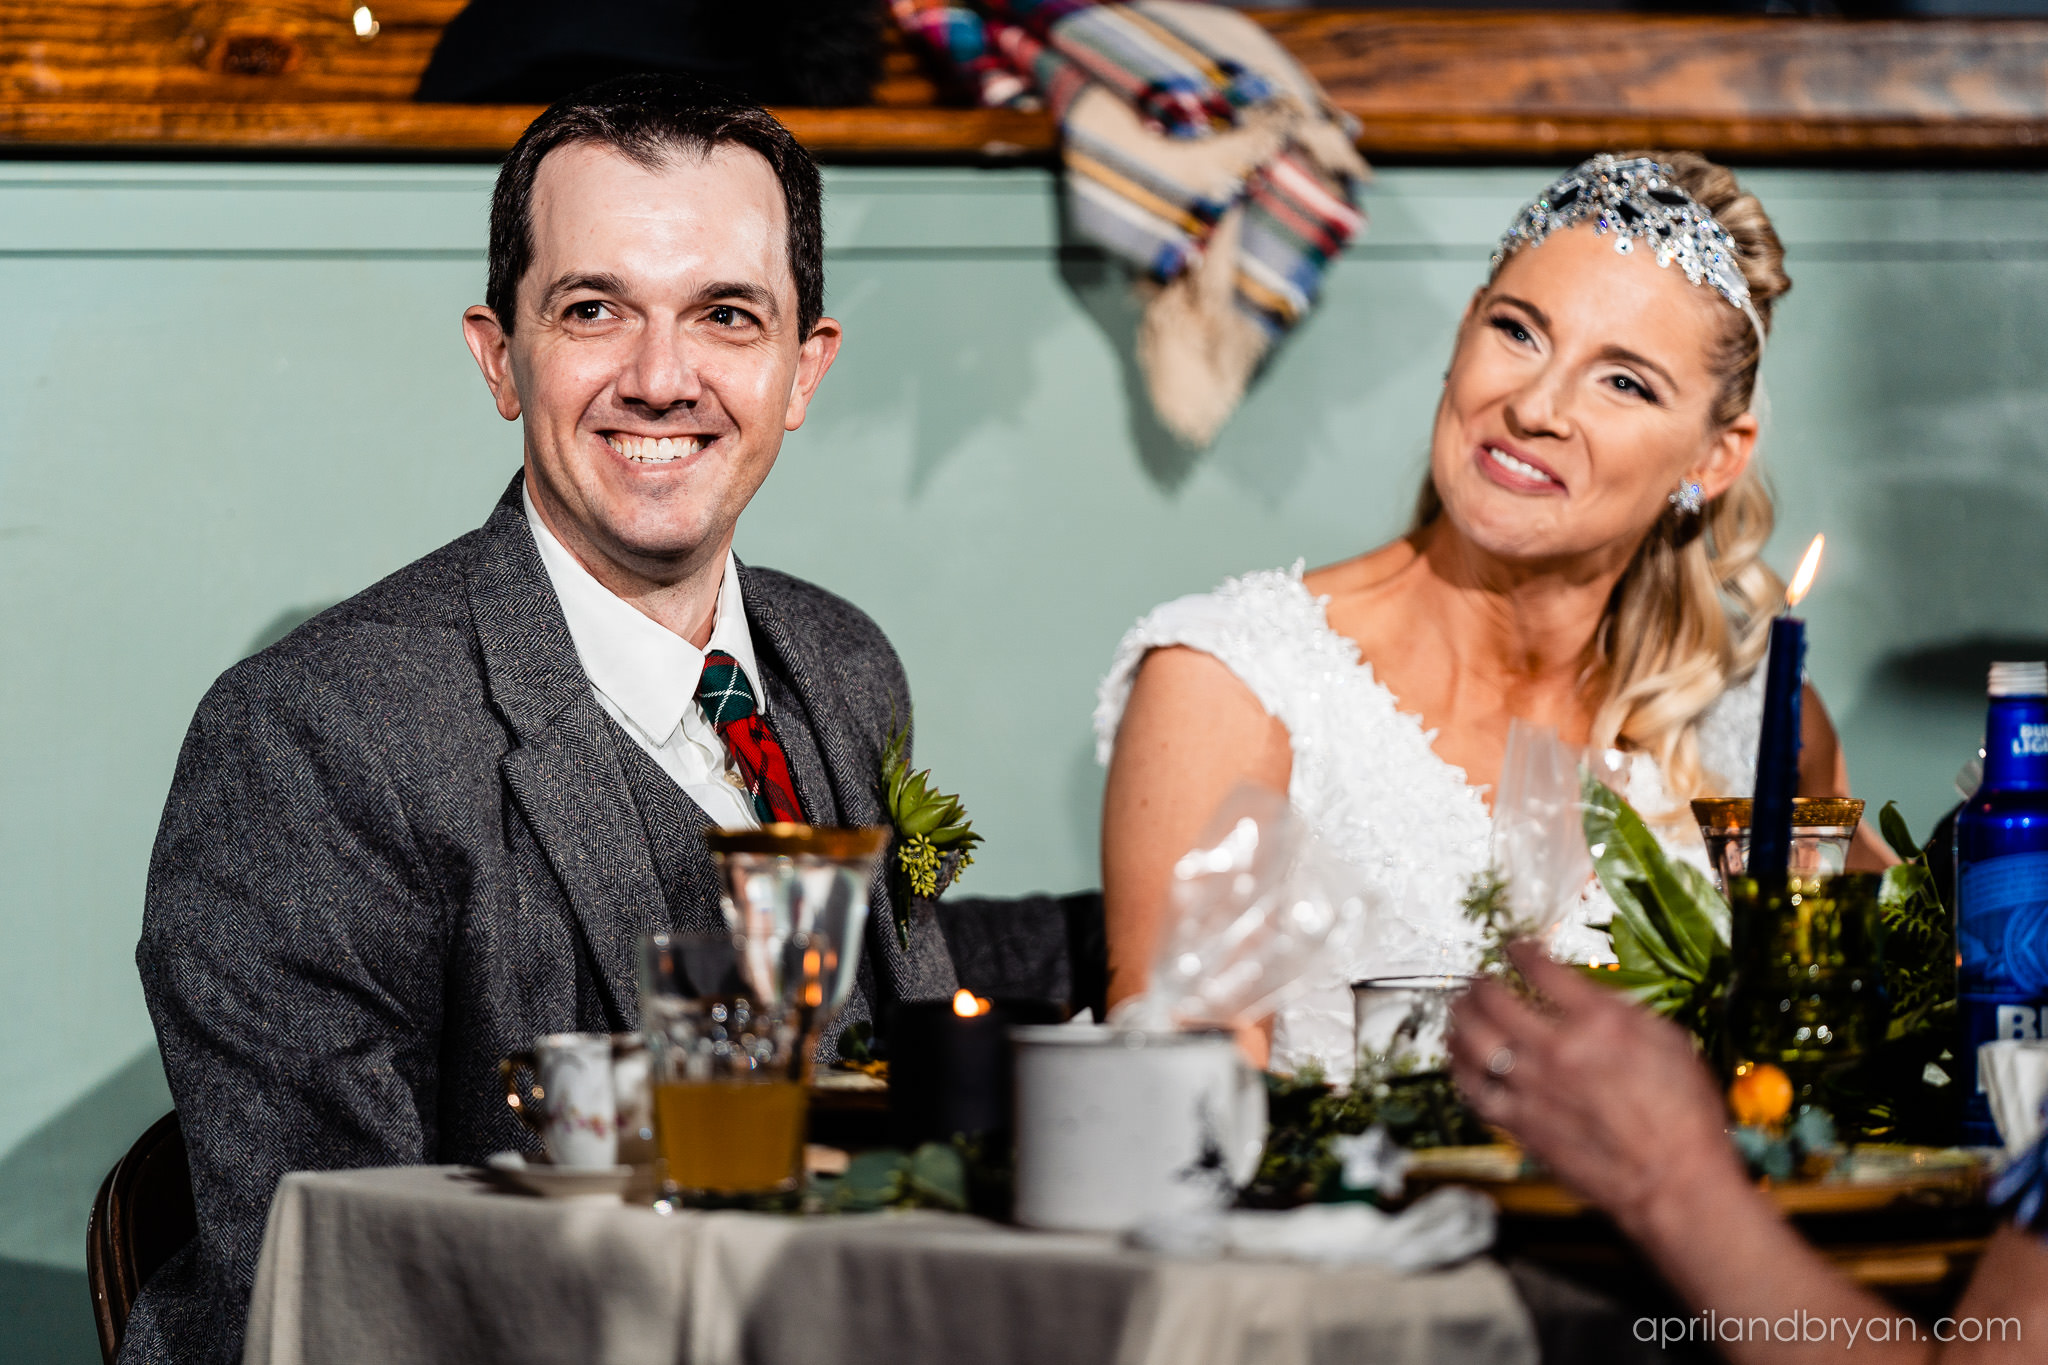 the newly weds react to speeches given at the reception. All smiles. Nicholas and Rebecca Fasnacht tie the not at Tellus360 on November 1, 2019. Captured by April & Bryan Photography and featured on Dream Weddings.